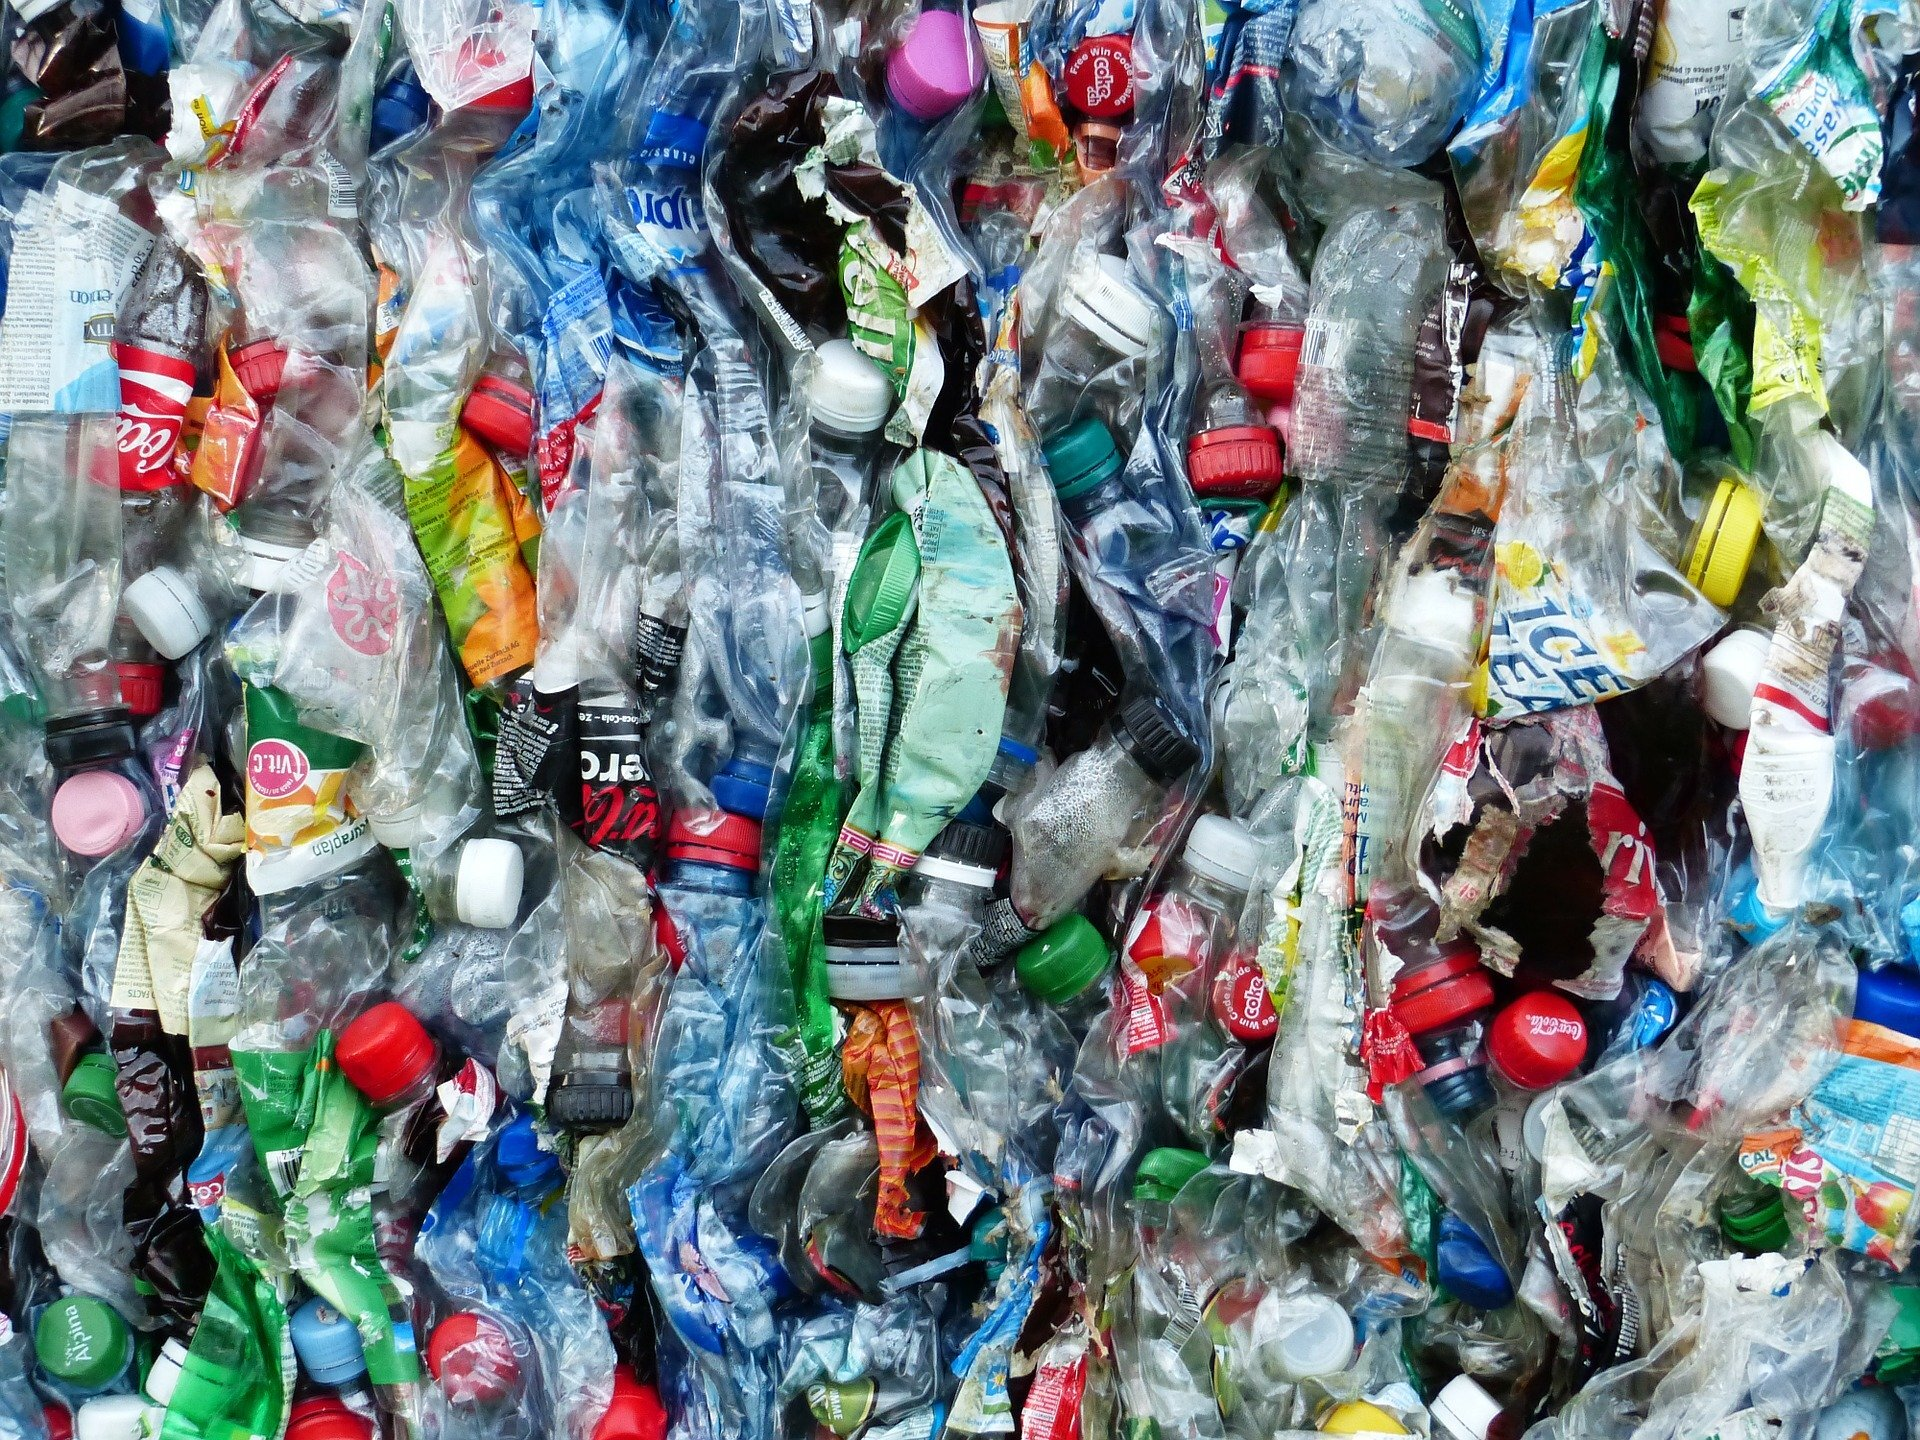 Upcycling plastic waste into high-performing mechanical lubricants